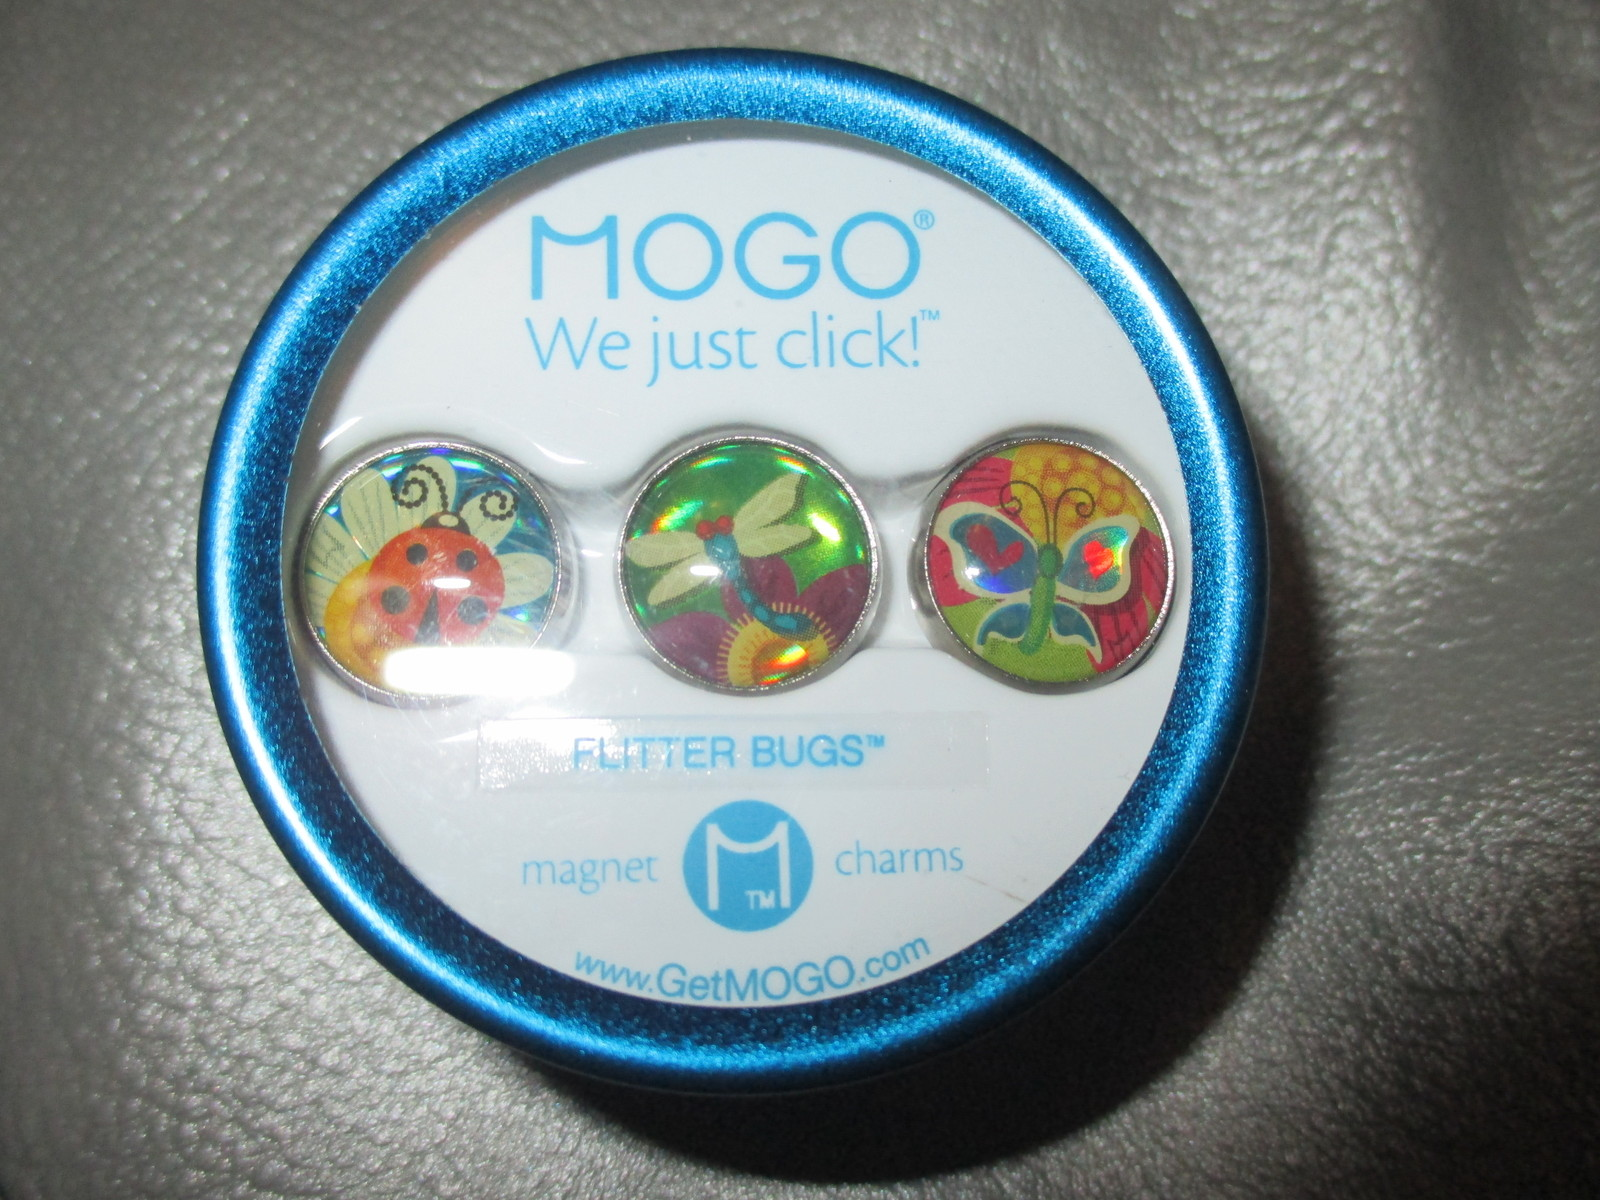 MOGO Charm Collections Flitter Bugs Set of 3 Charms within 1 Tin